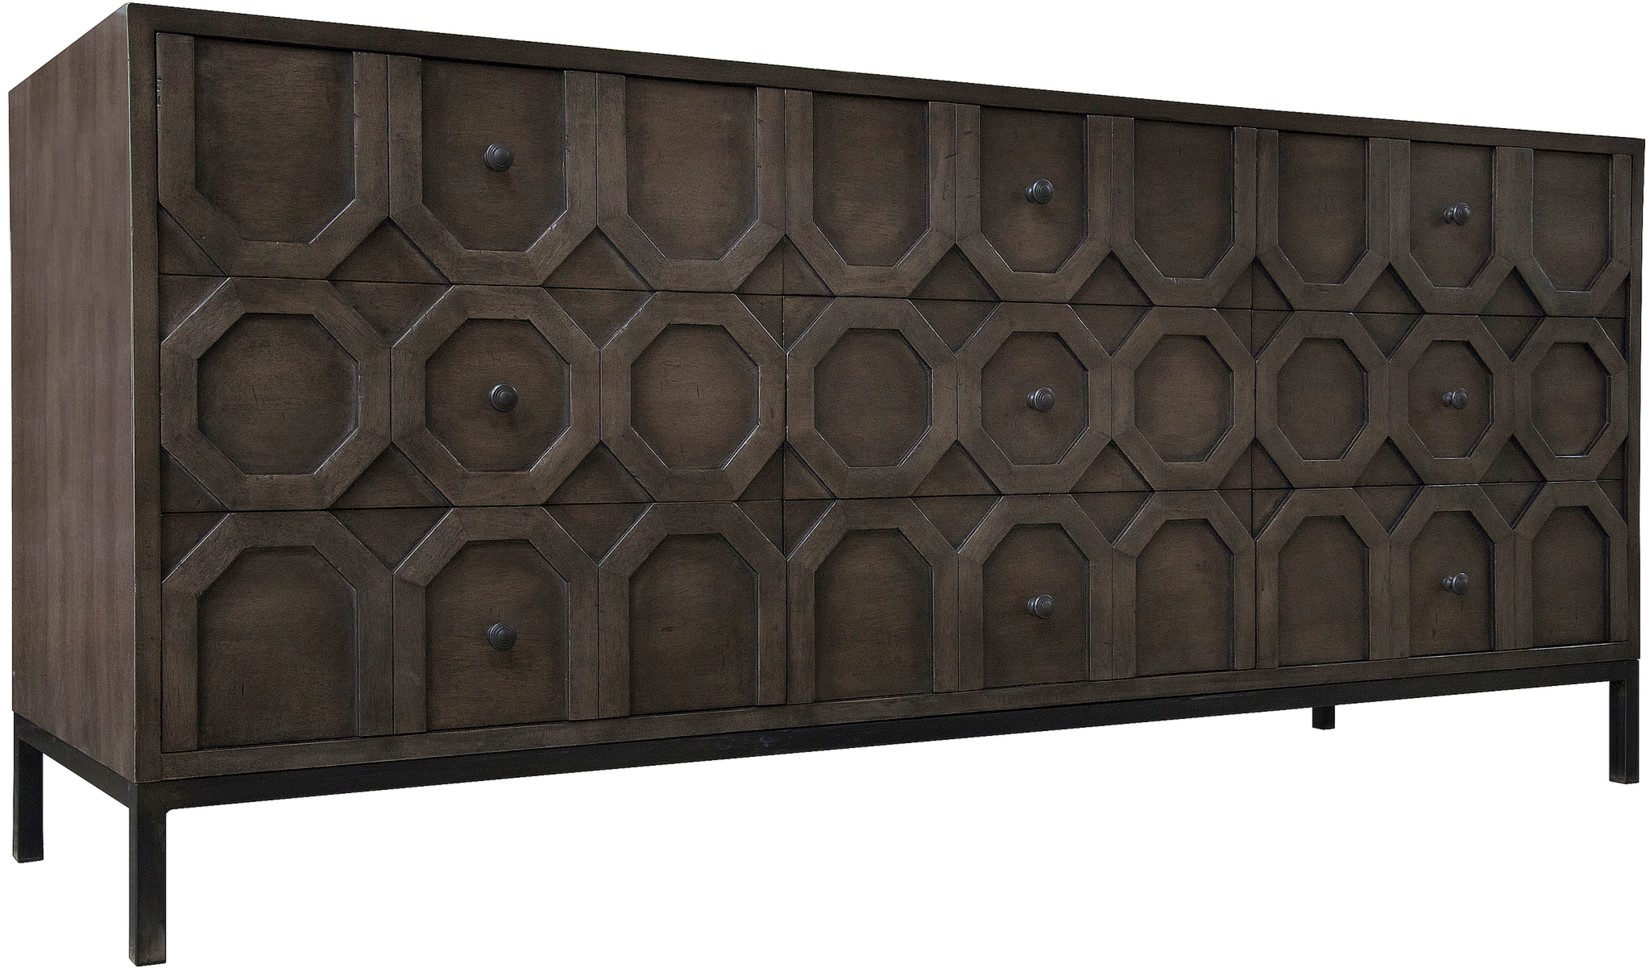 hadley 9 drawer buffet - Buffet Noir